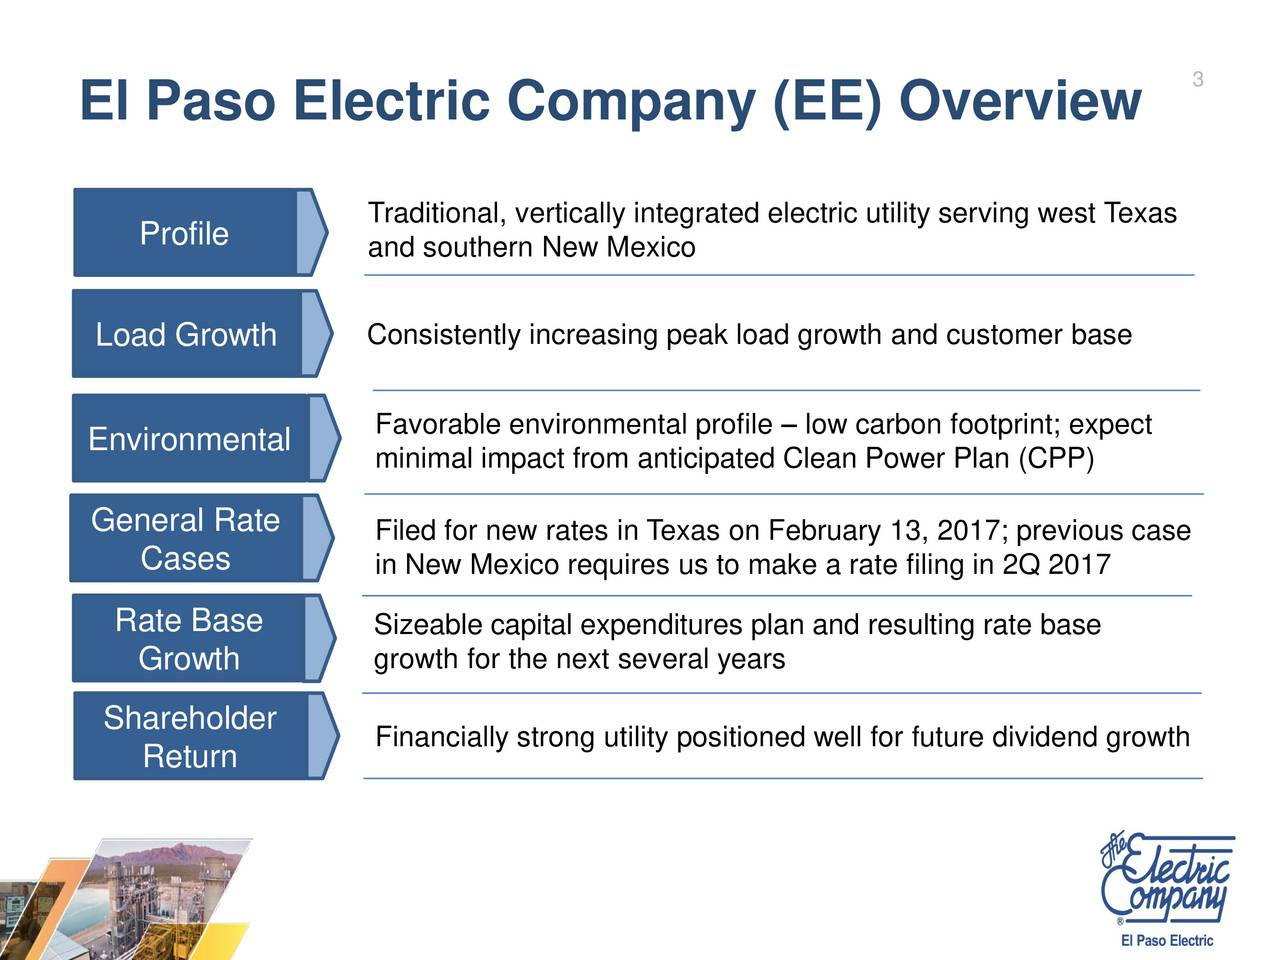 El Paso Electric Company (EE) Overview Traditional, vertically integrated electric utility serving west Texas Profile and southern New Mexico Consistently increasing peak load growth and customer base Load Growth Favorable environmental profile  low carbon footprint; expect Environmental minimal impact from anticipated Clean Power Plan (CPP) General Rate Filed for new rates in Texas on February 13, 2017; previous case Cases in New Mexico requires us to make a rate filing in 2Q 2017 Rate Base Sizeable capital expenditures plan and resulting rate base Growth growth for the next several years Shareholder Financially strong utility positioned well for future dividend growth Return